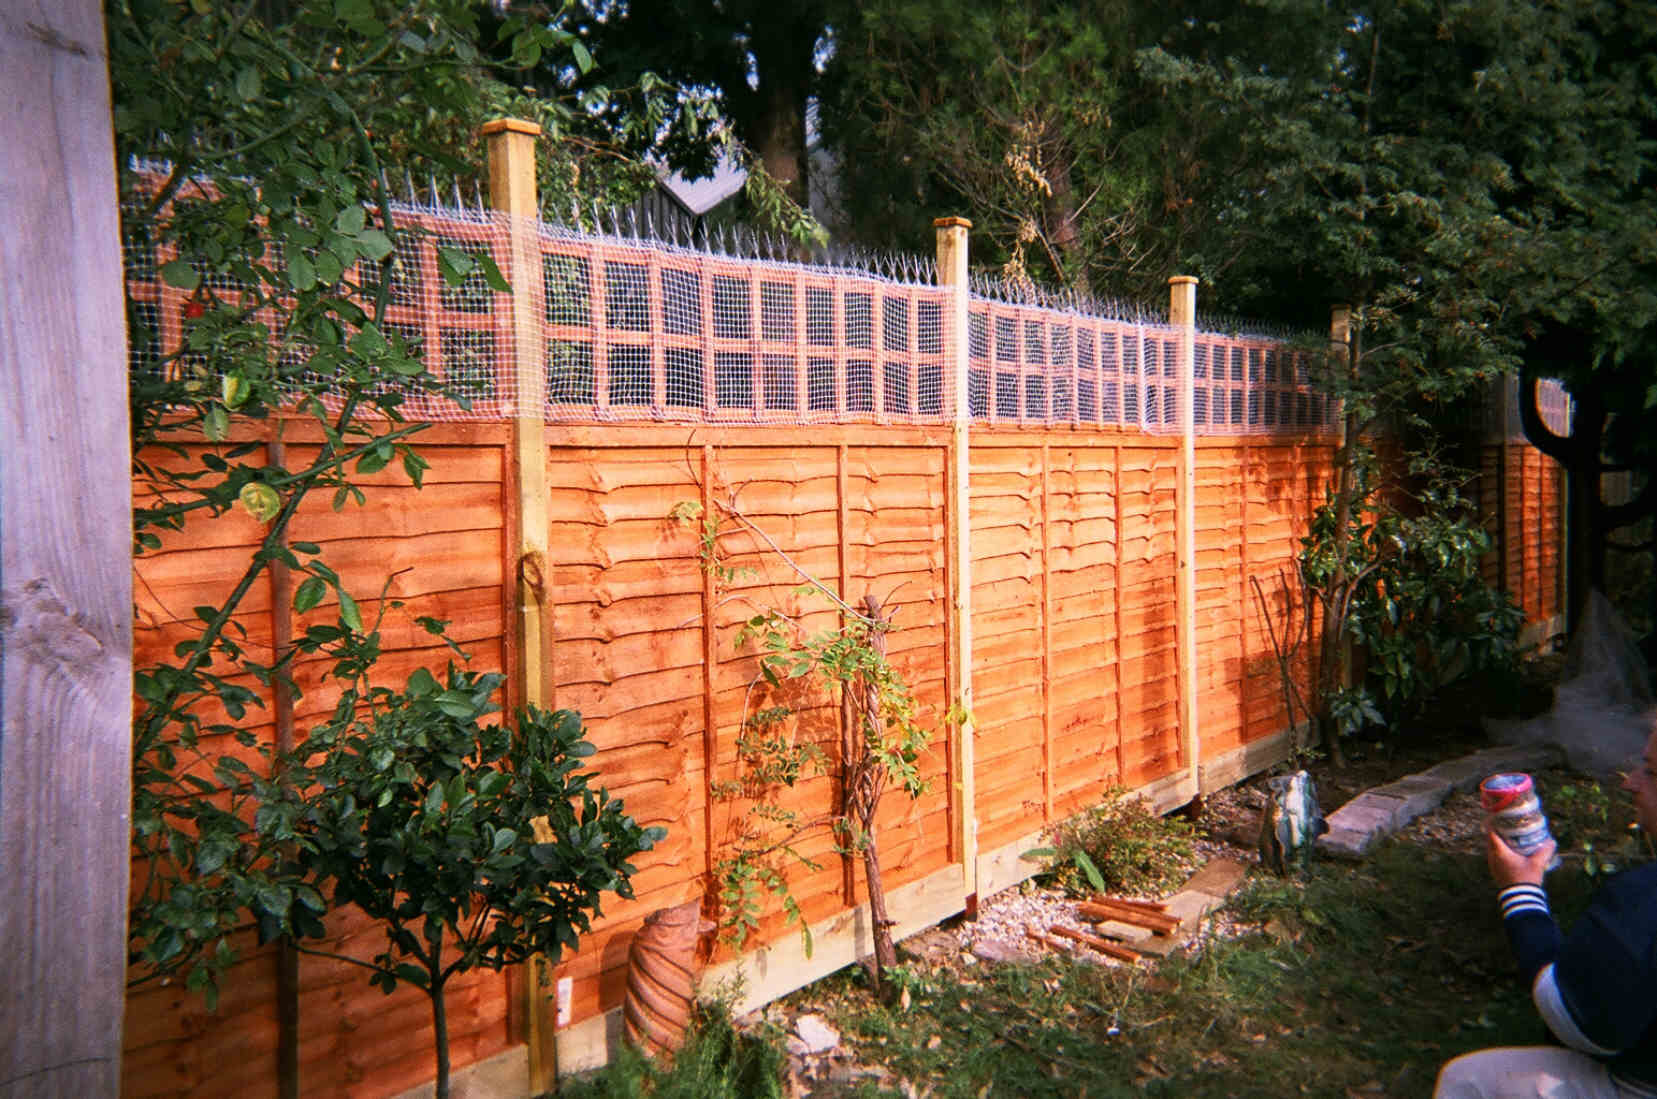 Goedkope Tuinafscheiding Garden Fences And Fencing Works By Calypso Landscaping